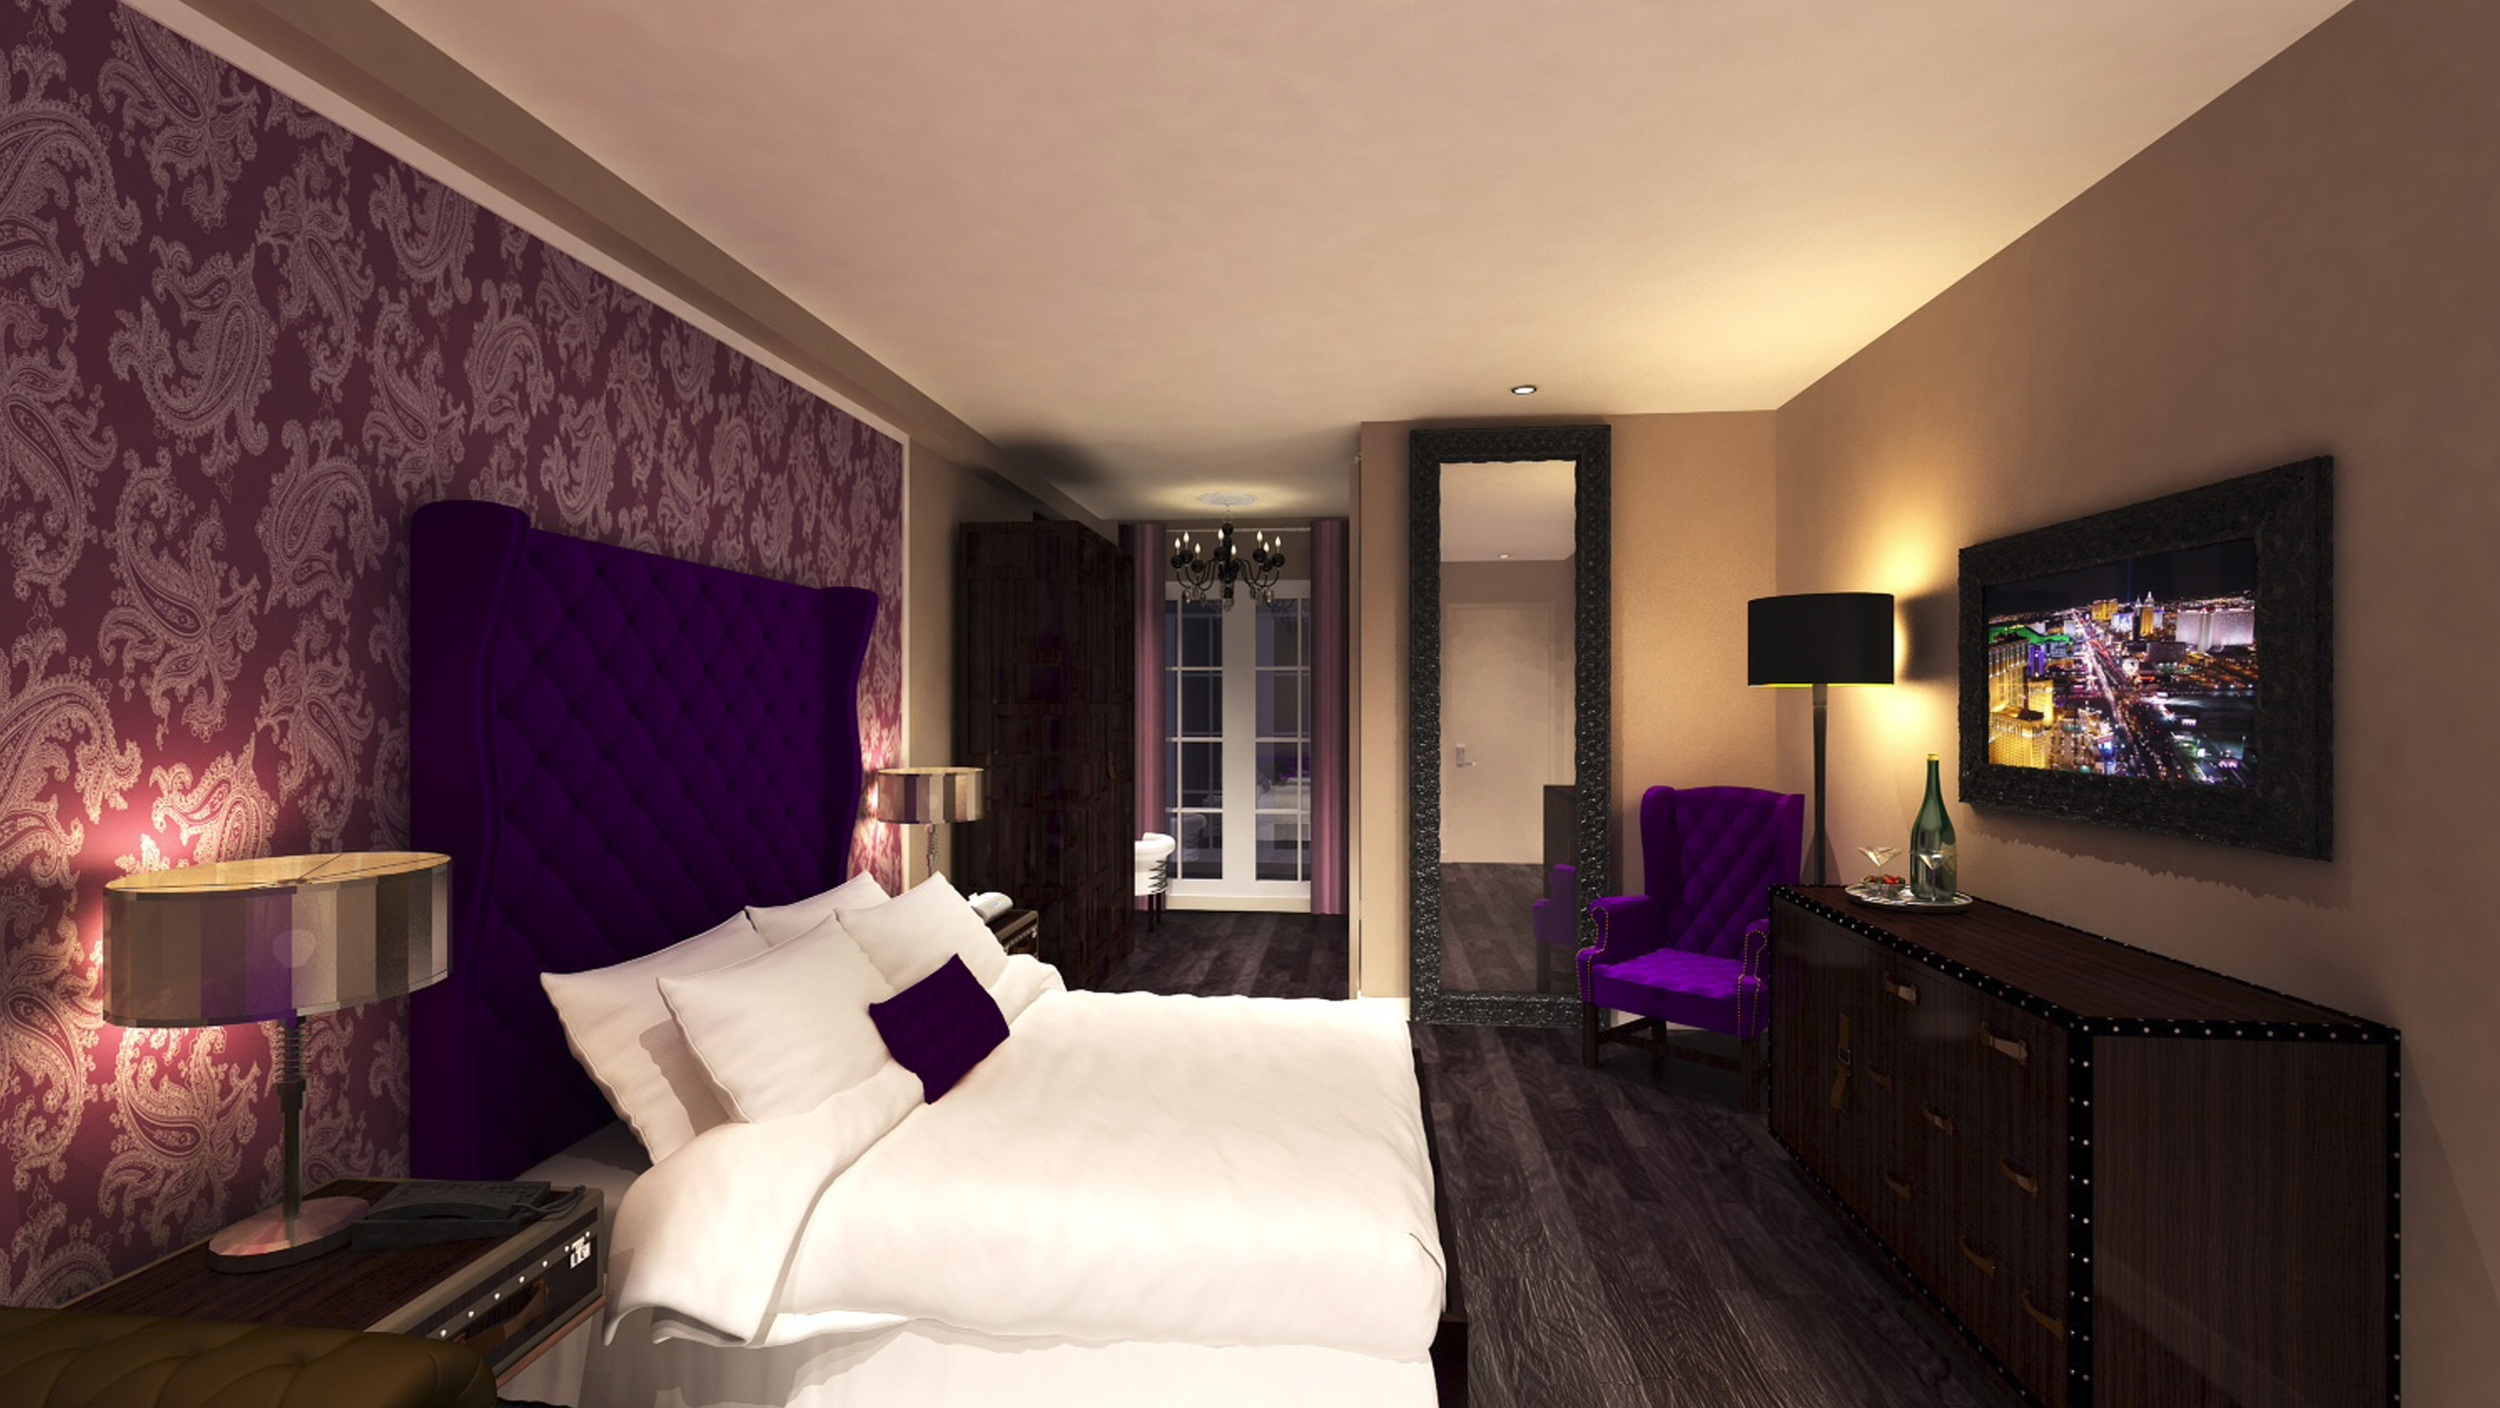 The Cromwell Las Vegas feels very modern, with flat screen TVs, super comfortable beds, dark wood, and purple accents. Courtesy of Caesars Entertainment.